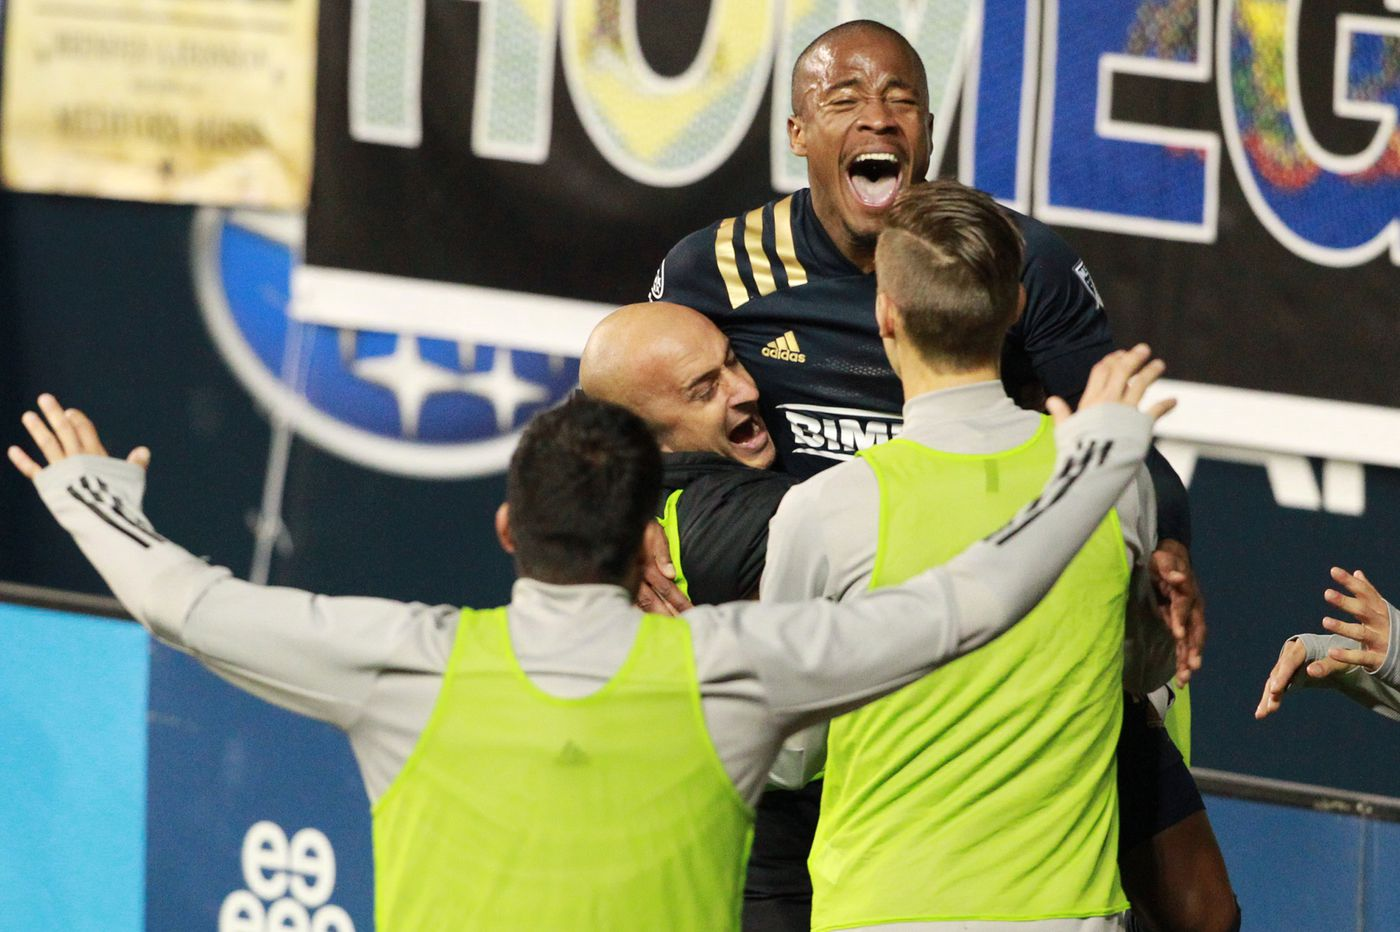 Sergio Santos' hat trick leads Union to 5-0 rout of Toronto FC and first place in the Eastern Conference